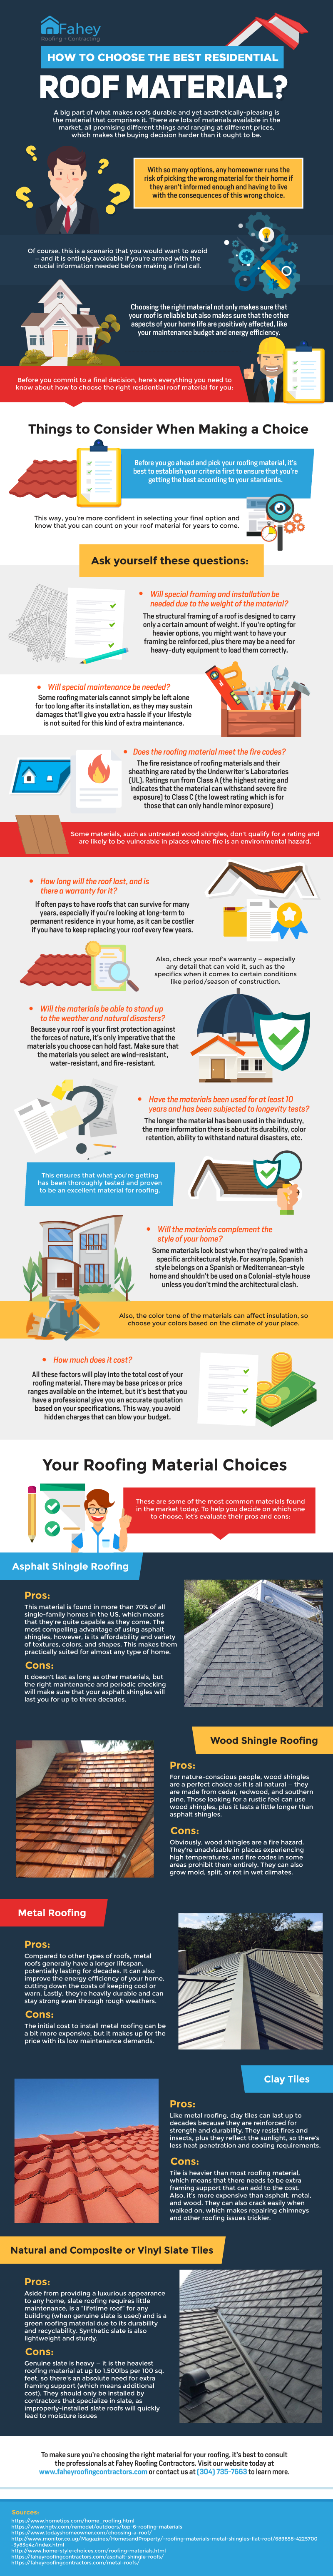 How to Choose the Best Residential Roof Material? [Infographic]